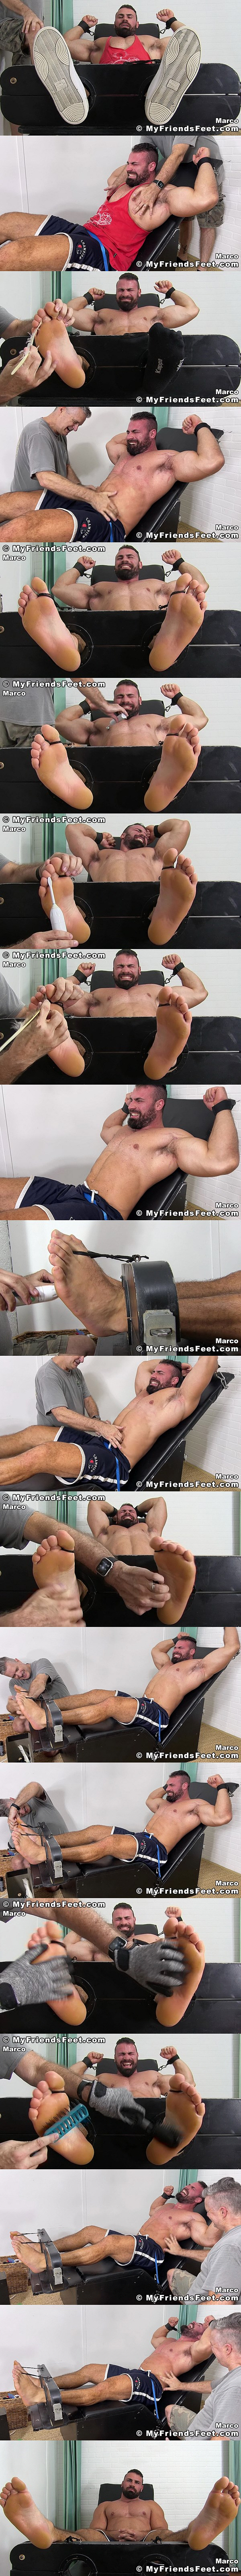 Myfriendsfeet - a foot master tickles straight beefcake Marco Pinotti's sides, pits, huge thighs and soles with his hands and tickle toys in Giant Marco Tickled 02